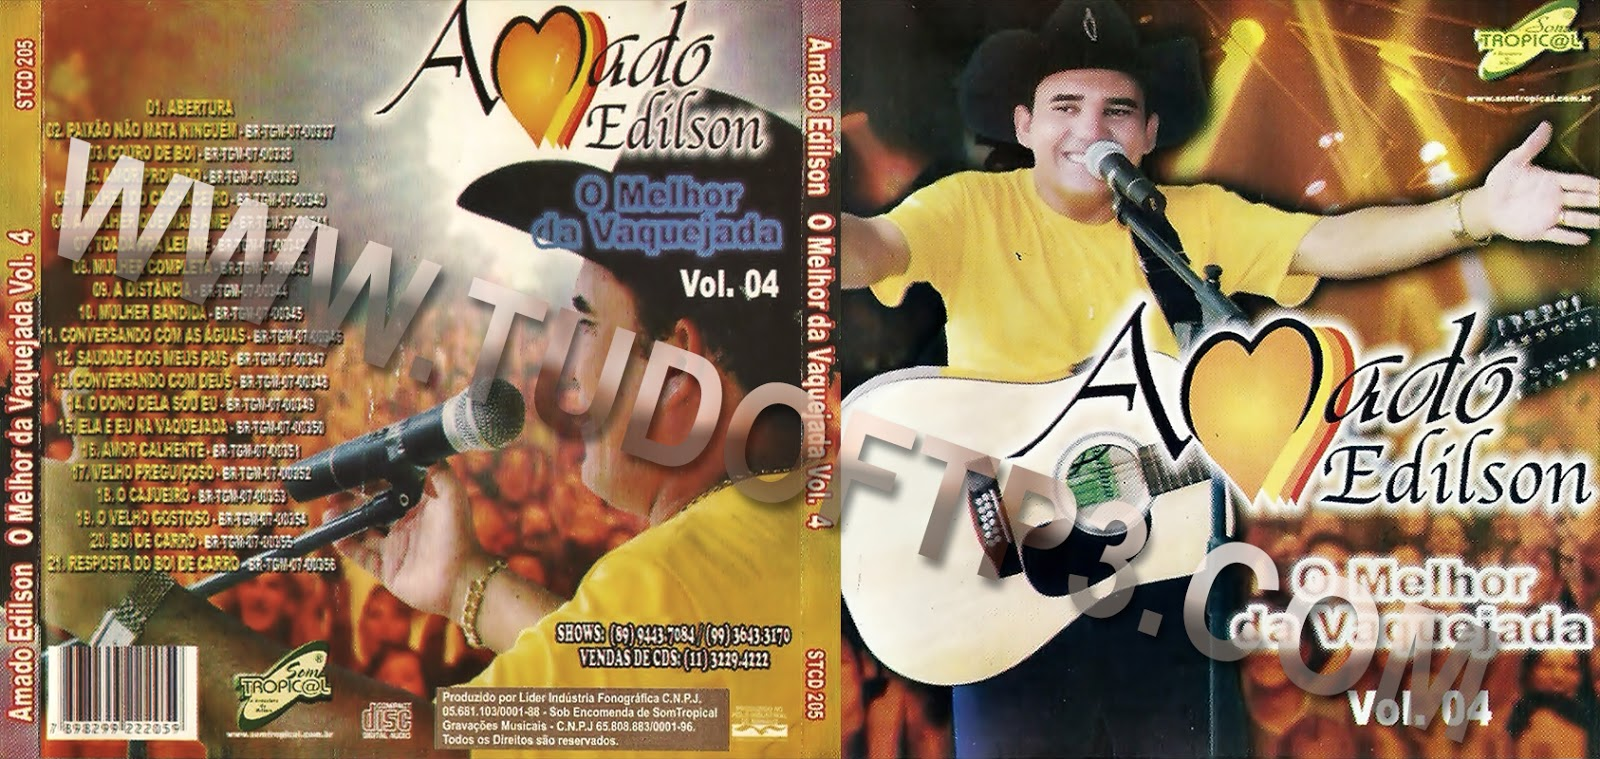 cd de amado edilson vol 1